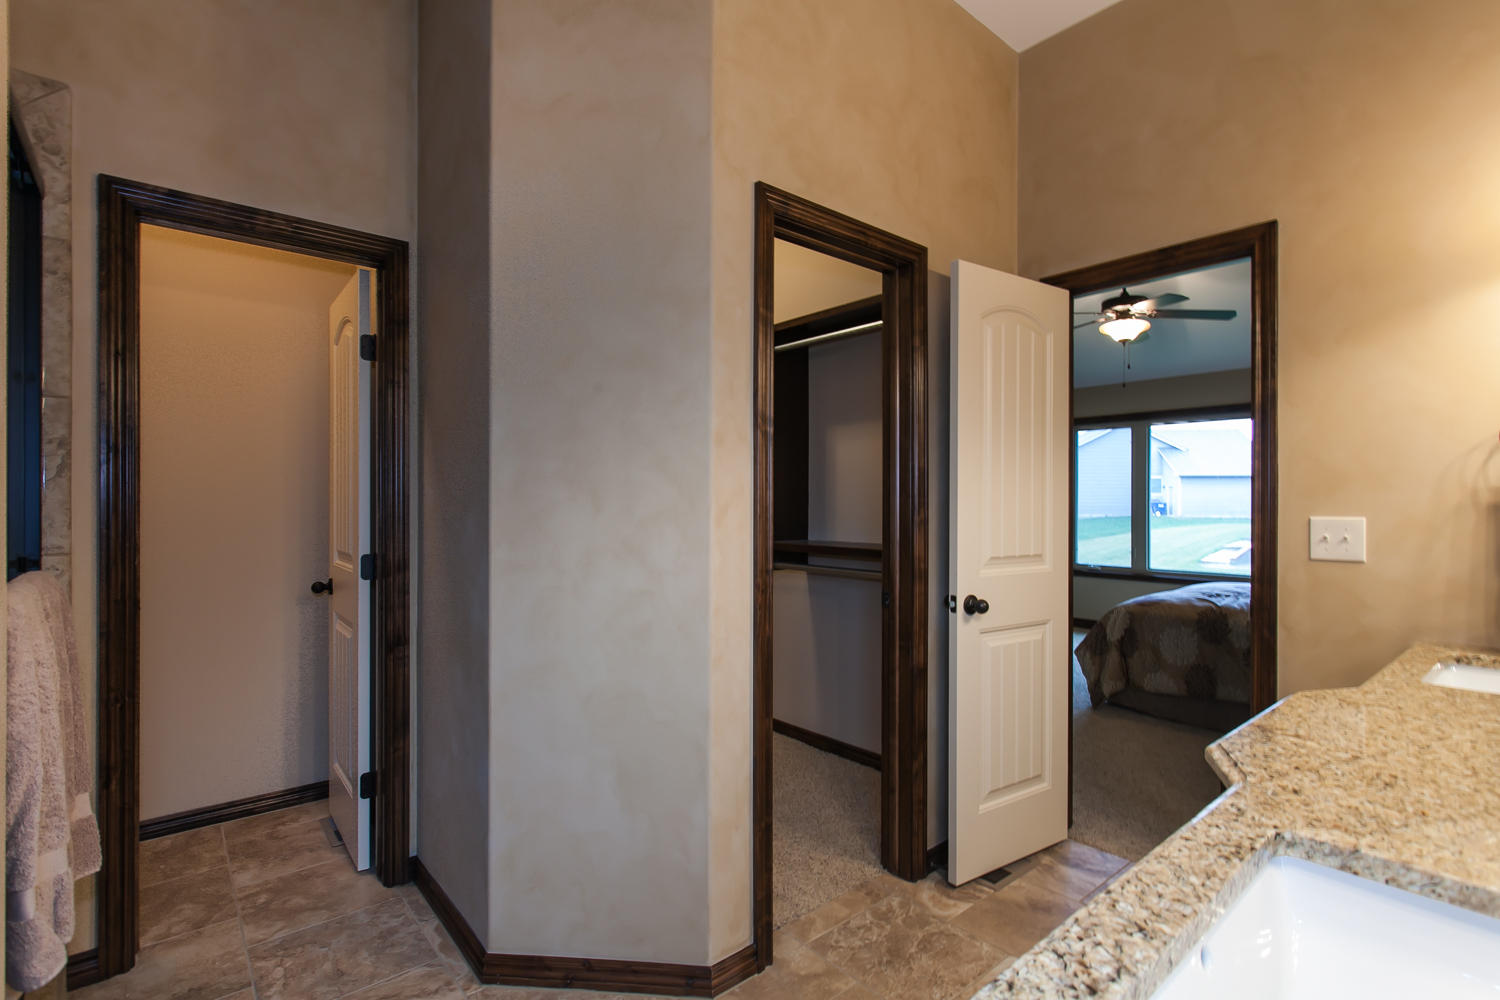 14706 W Valley Hi-large-016-16-Master Bath-1500x1000-72dpi.jpg